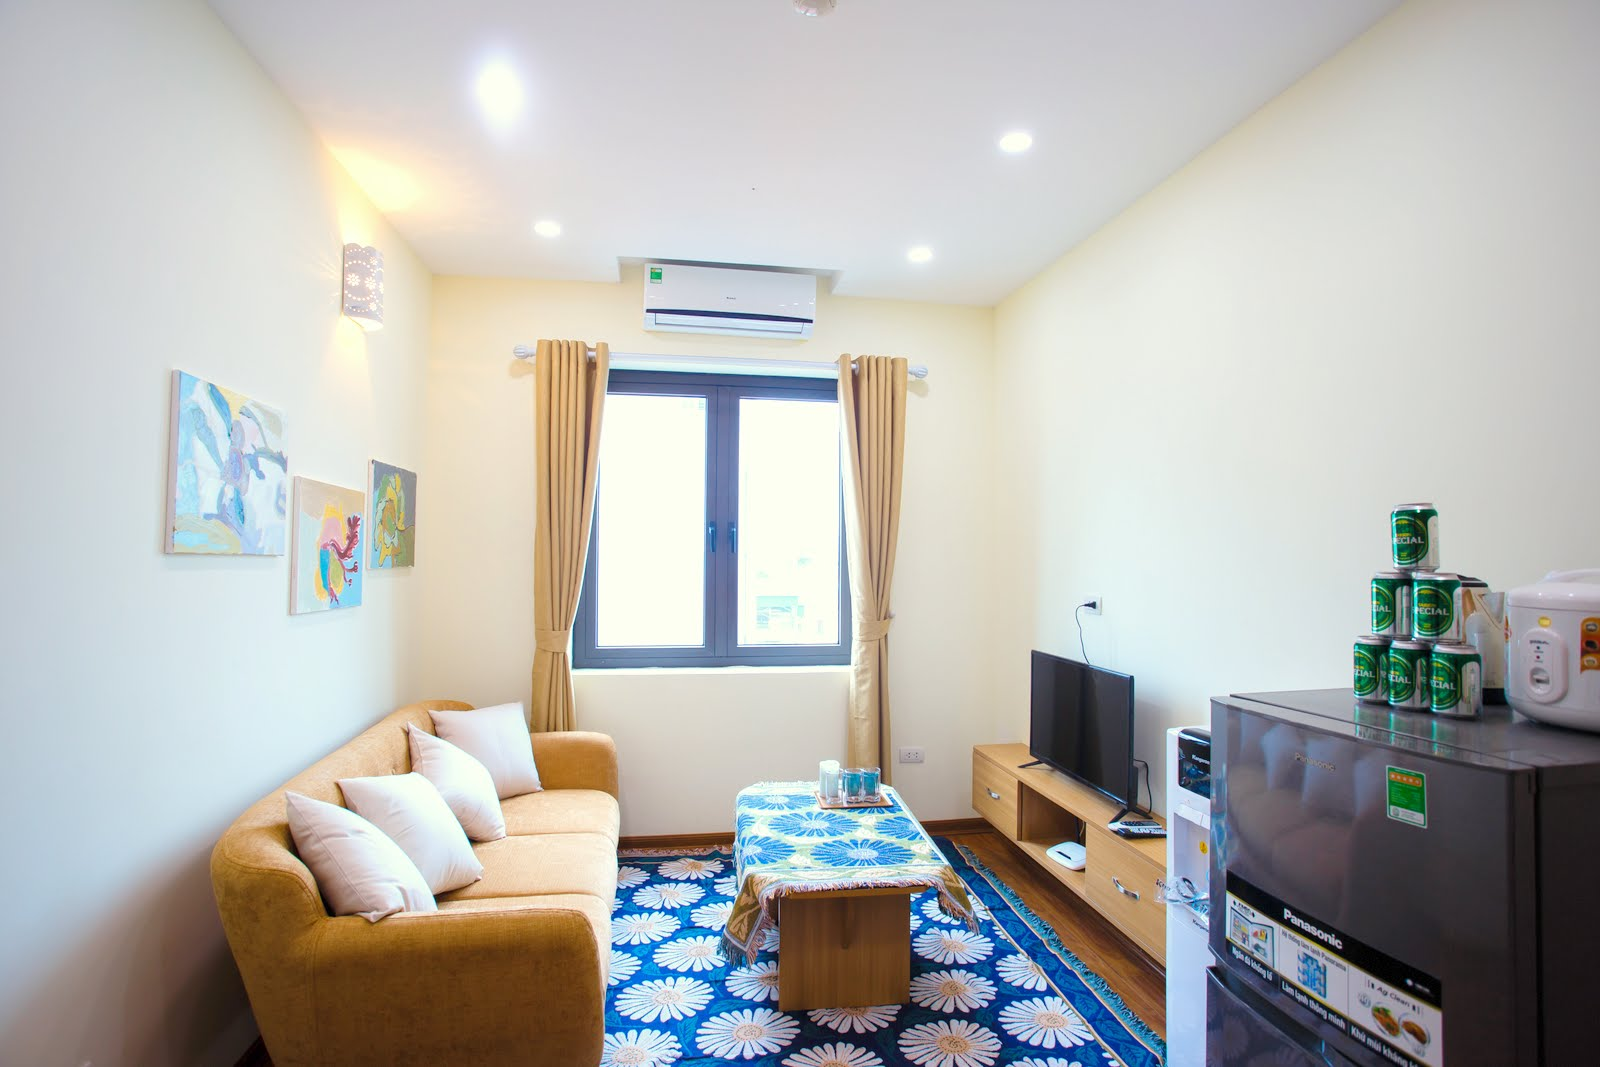 Cau Giay Serviced Apartments for rent